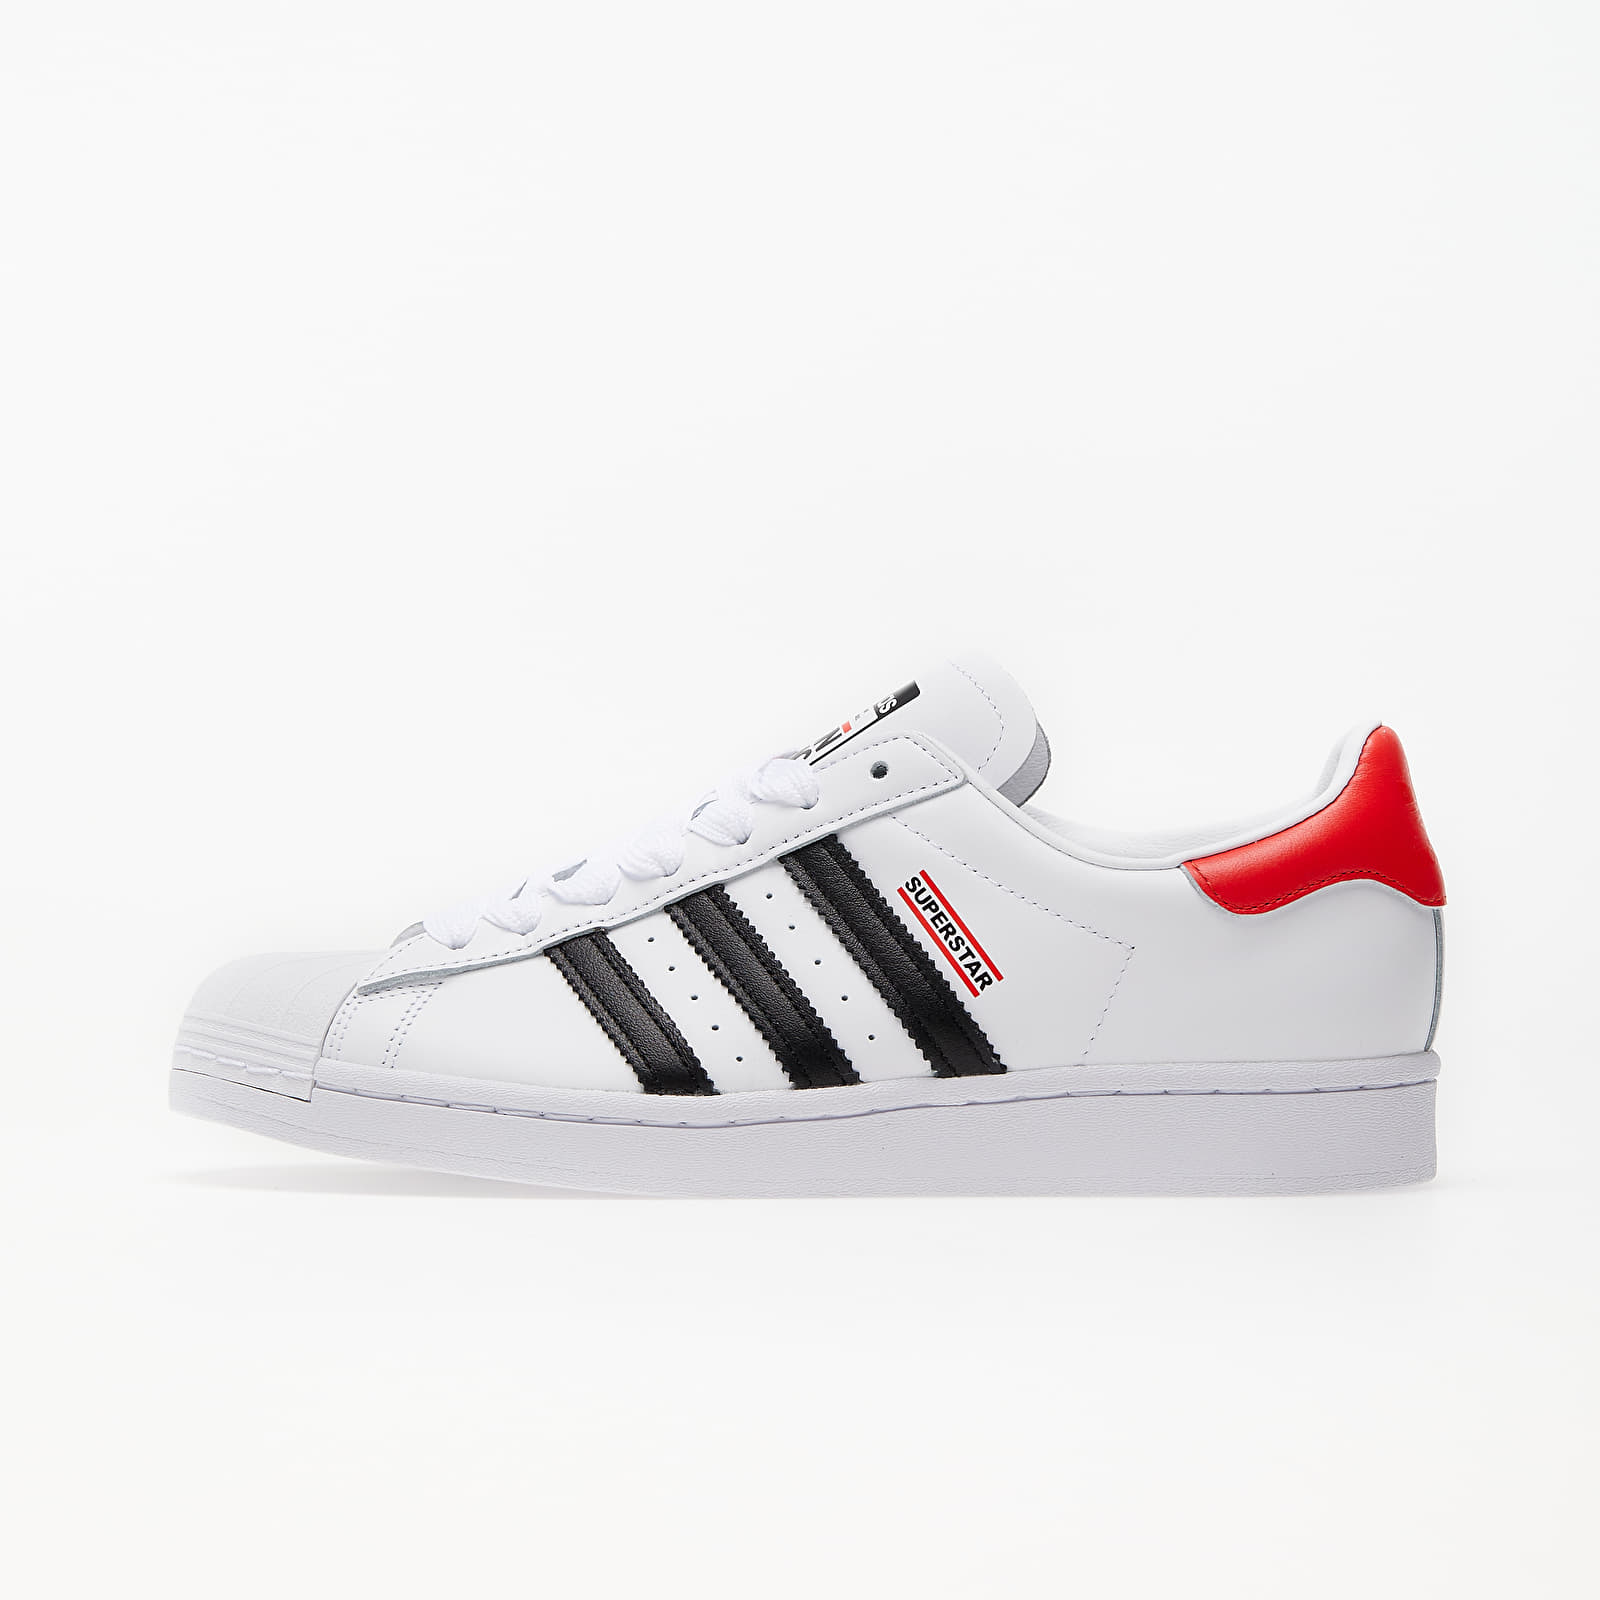 adidas x RUN DMC Superstar 50 Ftw White/ Core Black/ Hi-Res Red EUR 38